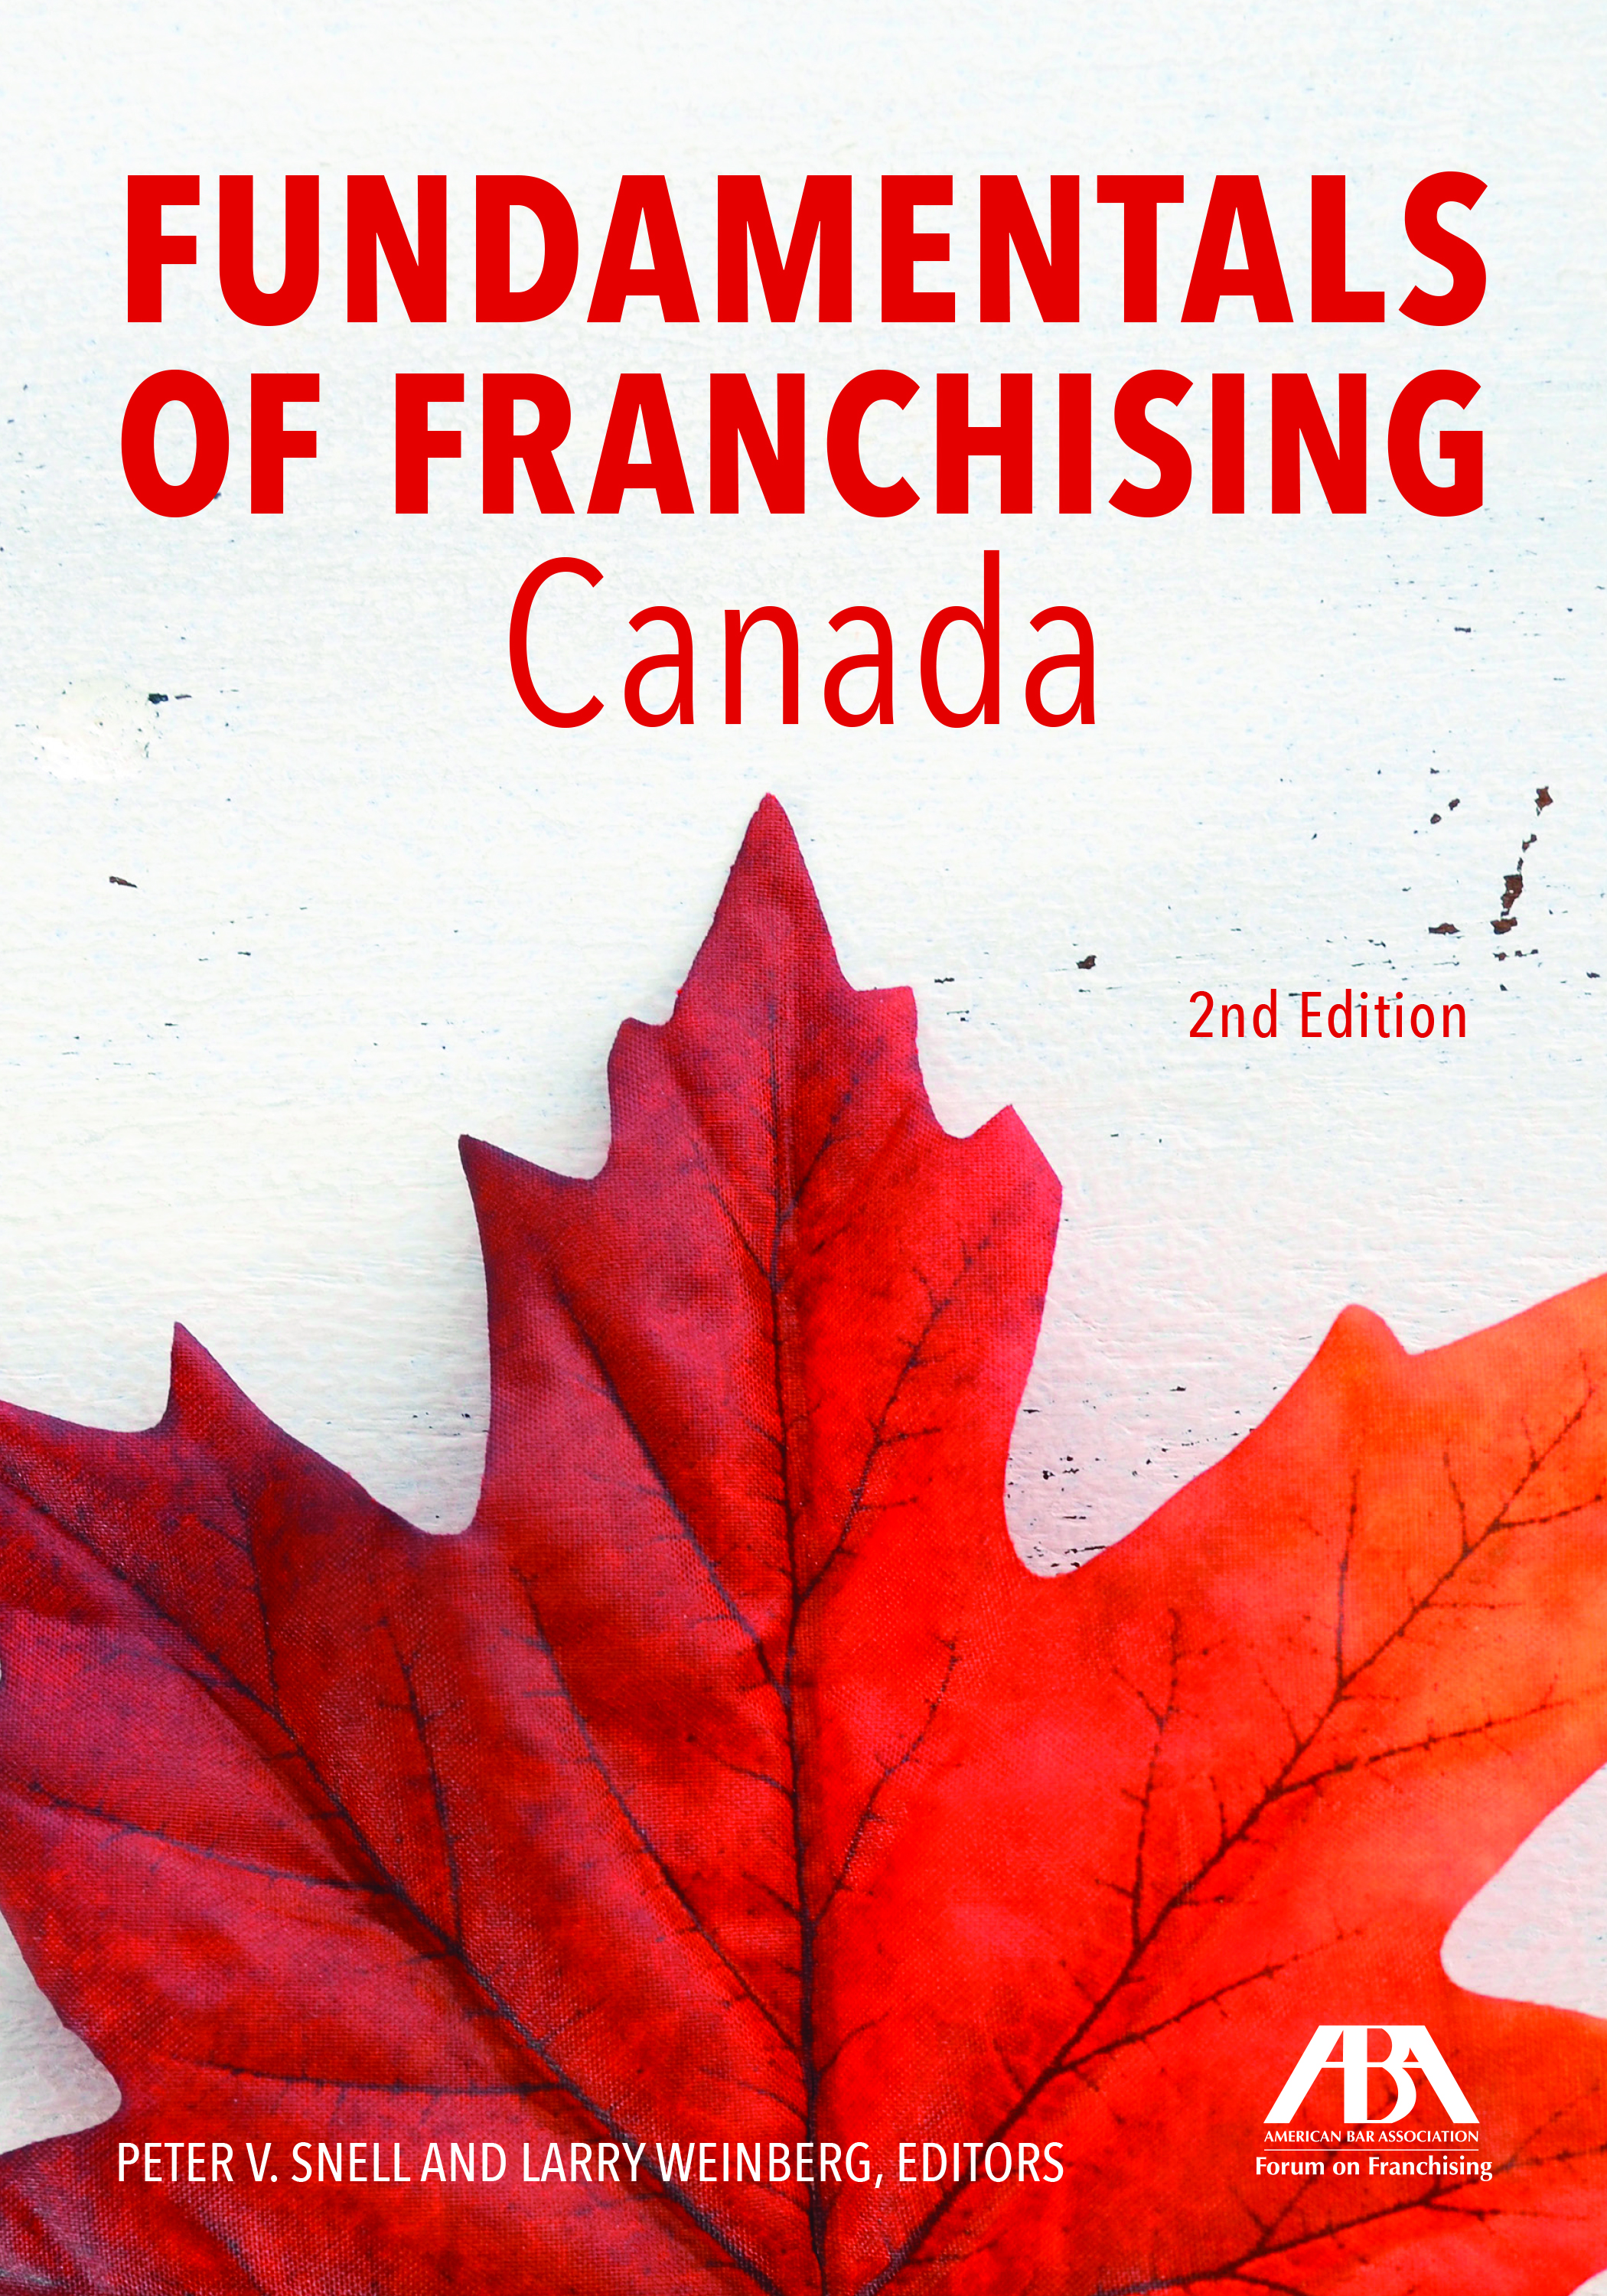 Fundamentals of Franchising - Canada, Second Edition